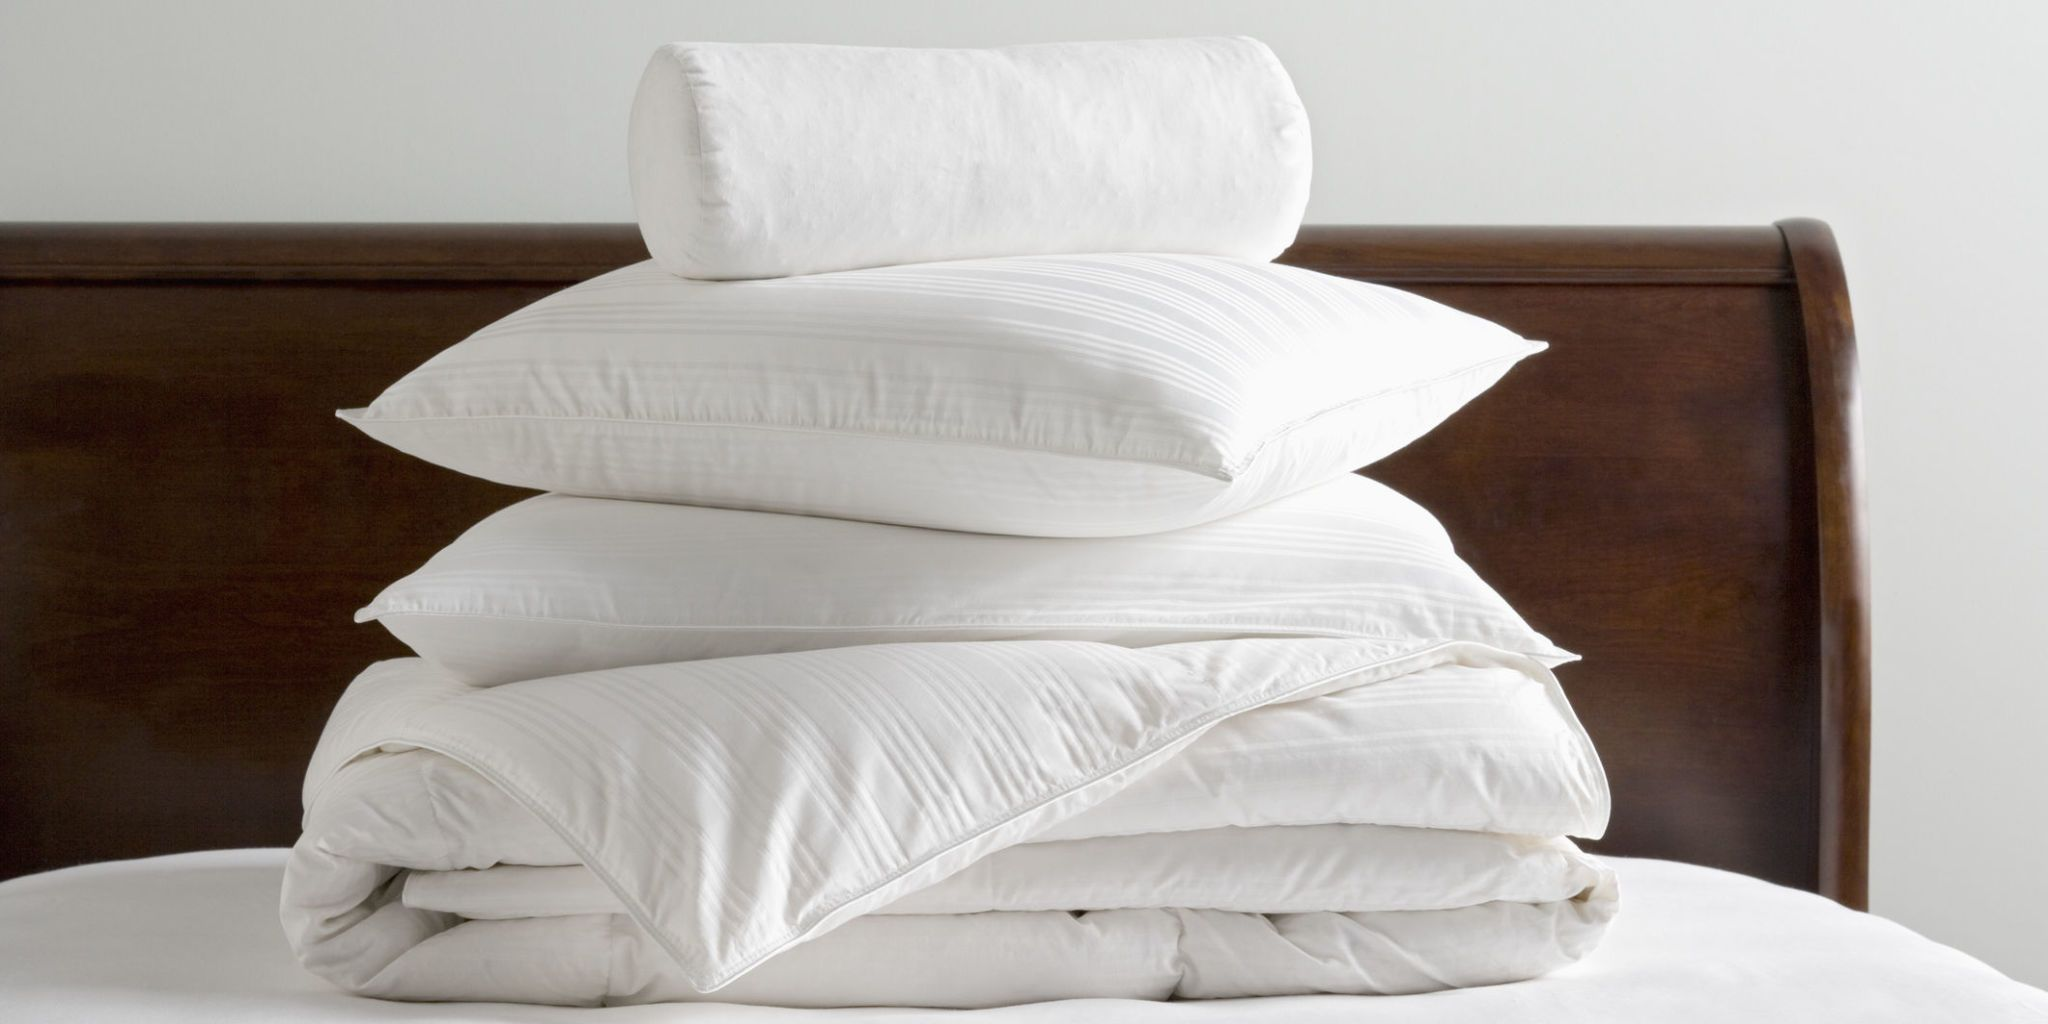 Pillow Reviews & 20 Best Pillow Reviews - Top Rated Bed Pillows